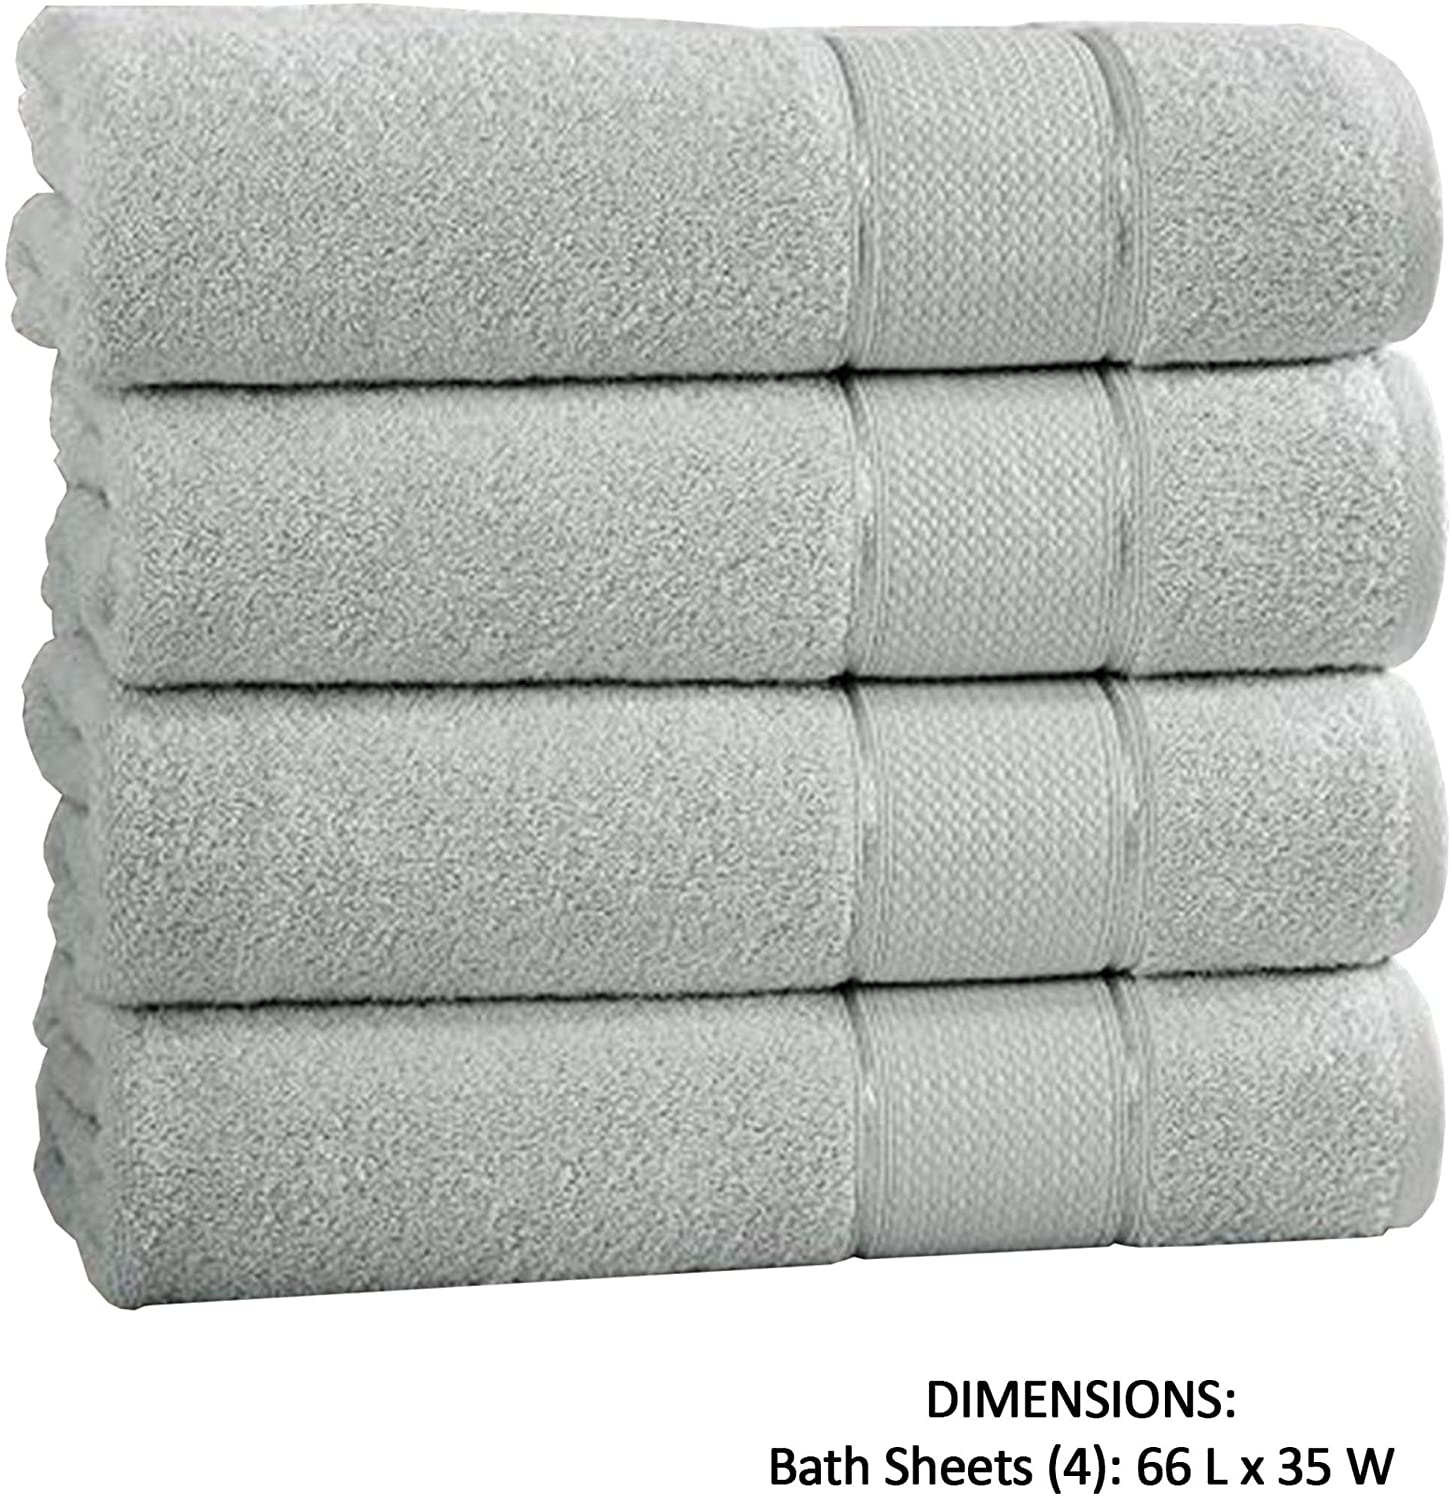 Unknown1 4 Piece Loft Bath Sheets Twill Weaving Gray Grey Solid Color Cotton Same Size Set